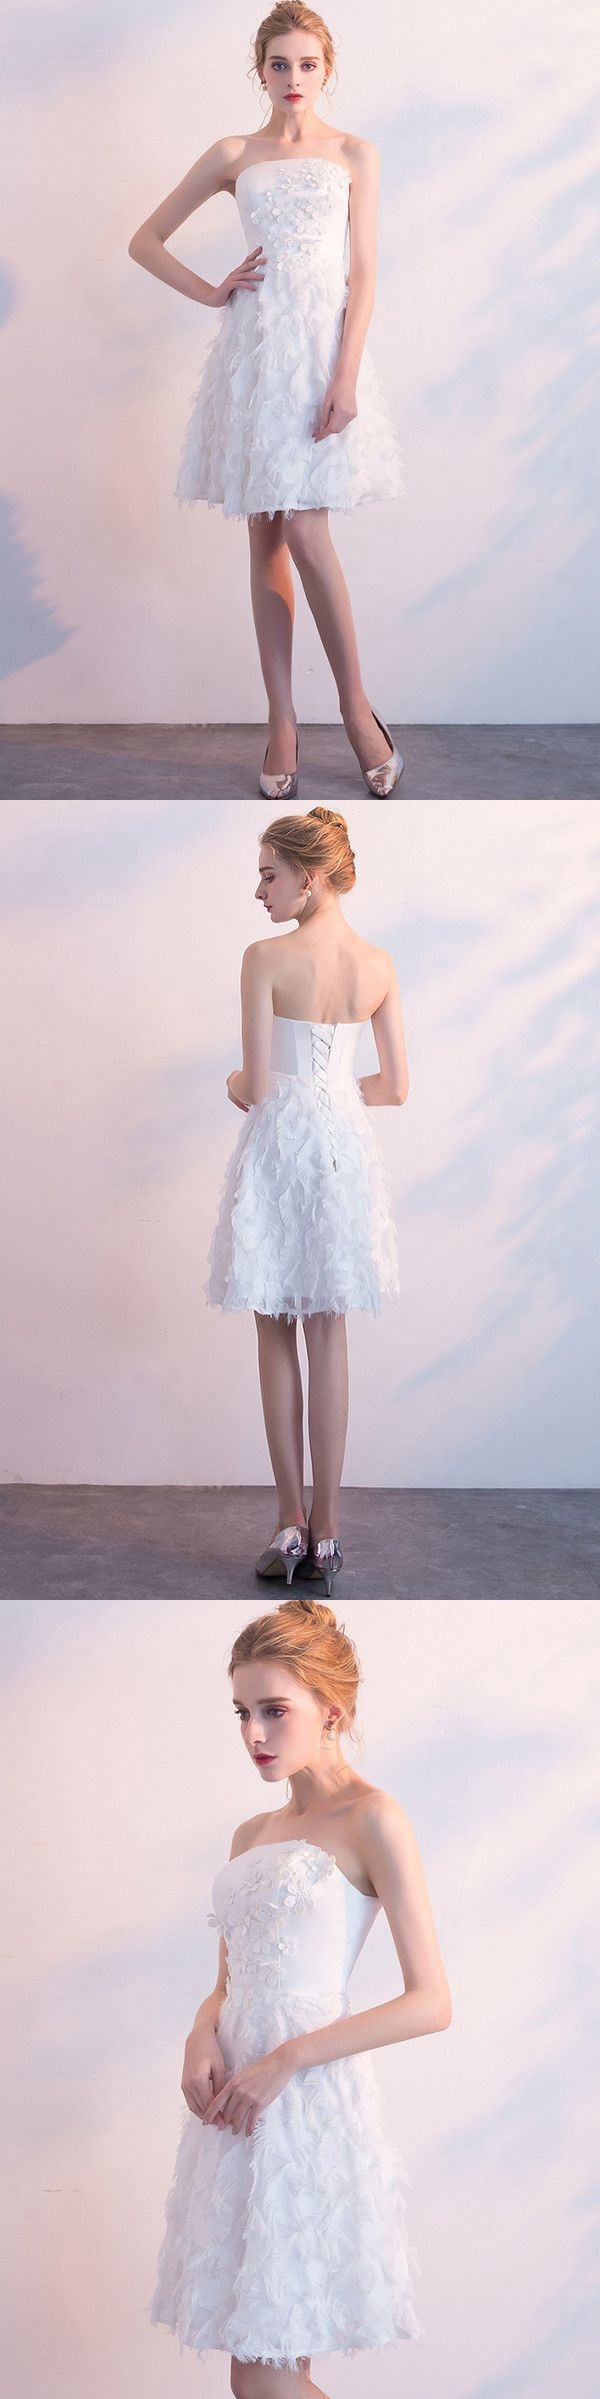 Chic White Homecoming Dress Party Cheap African Homecoming Dress